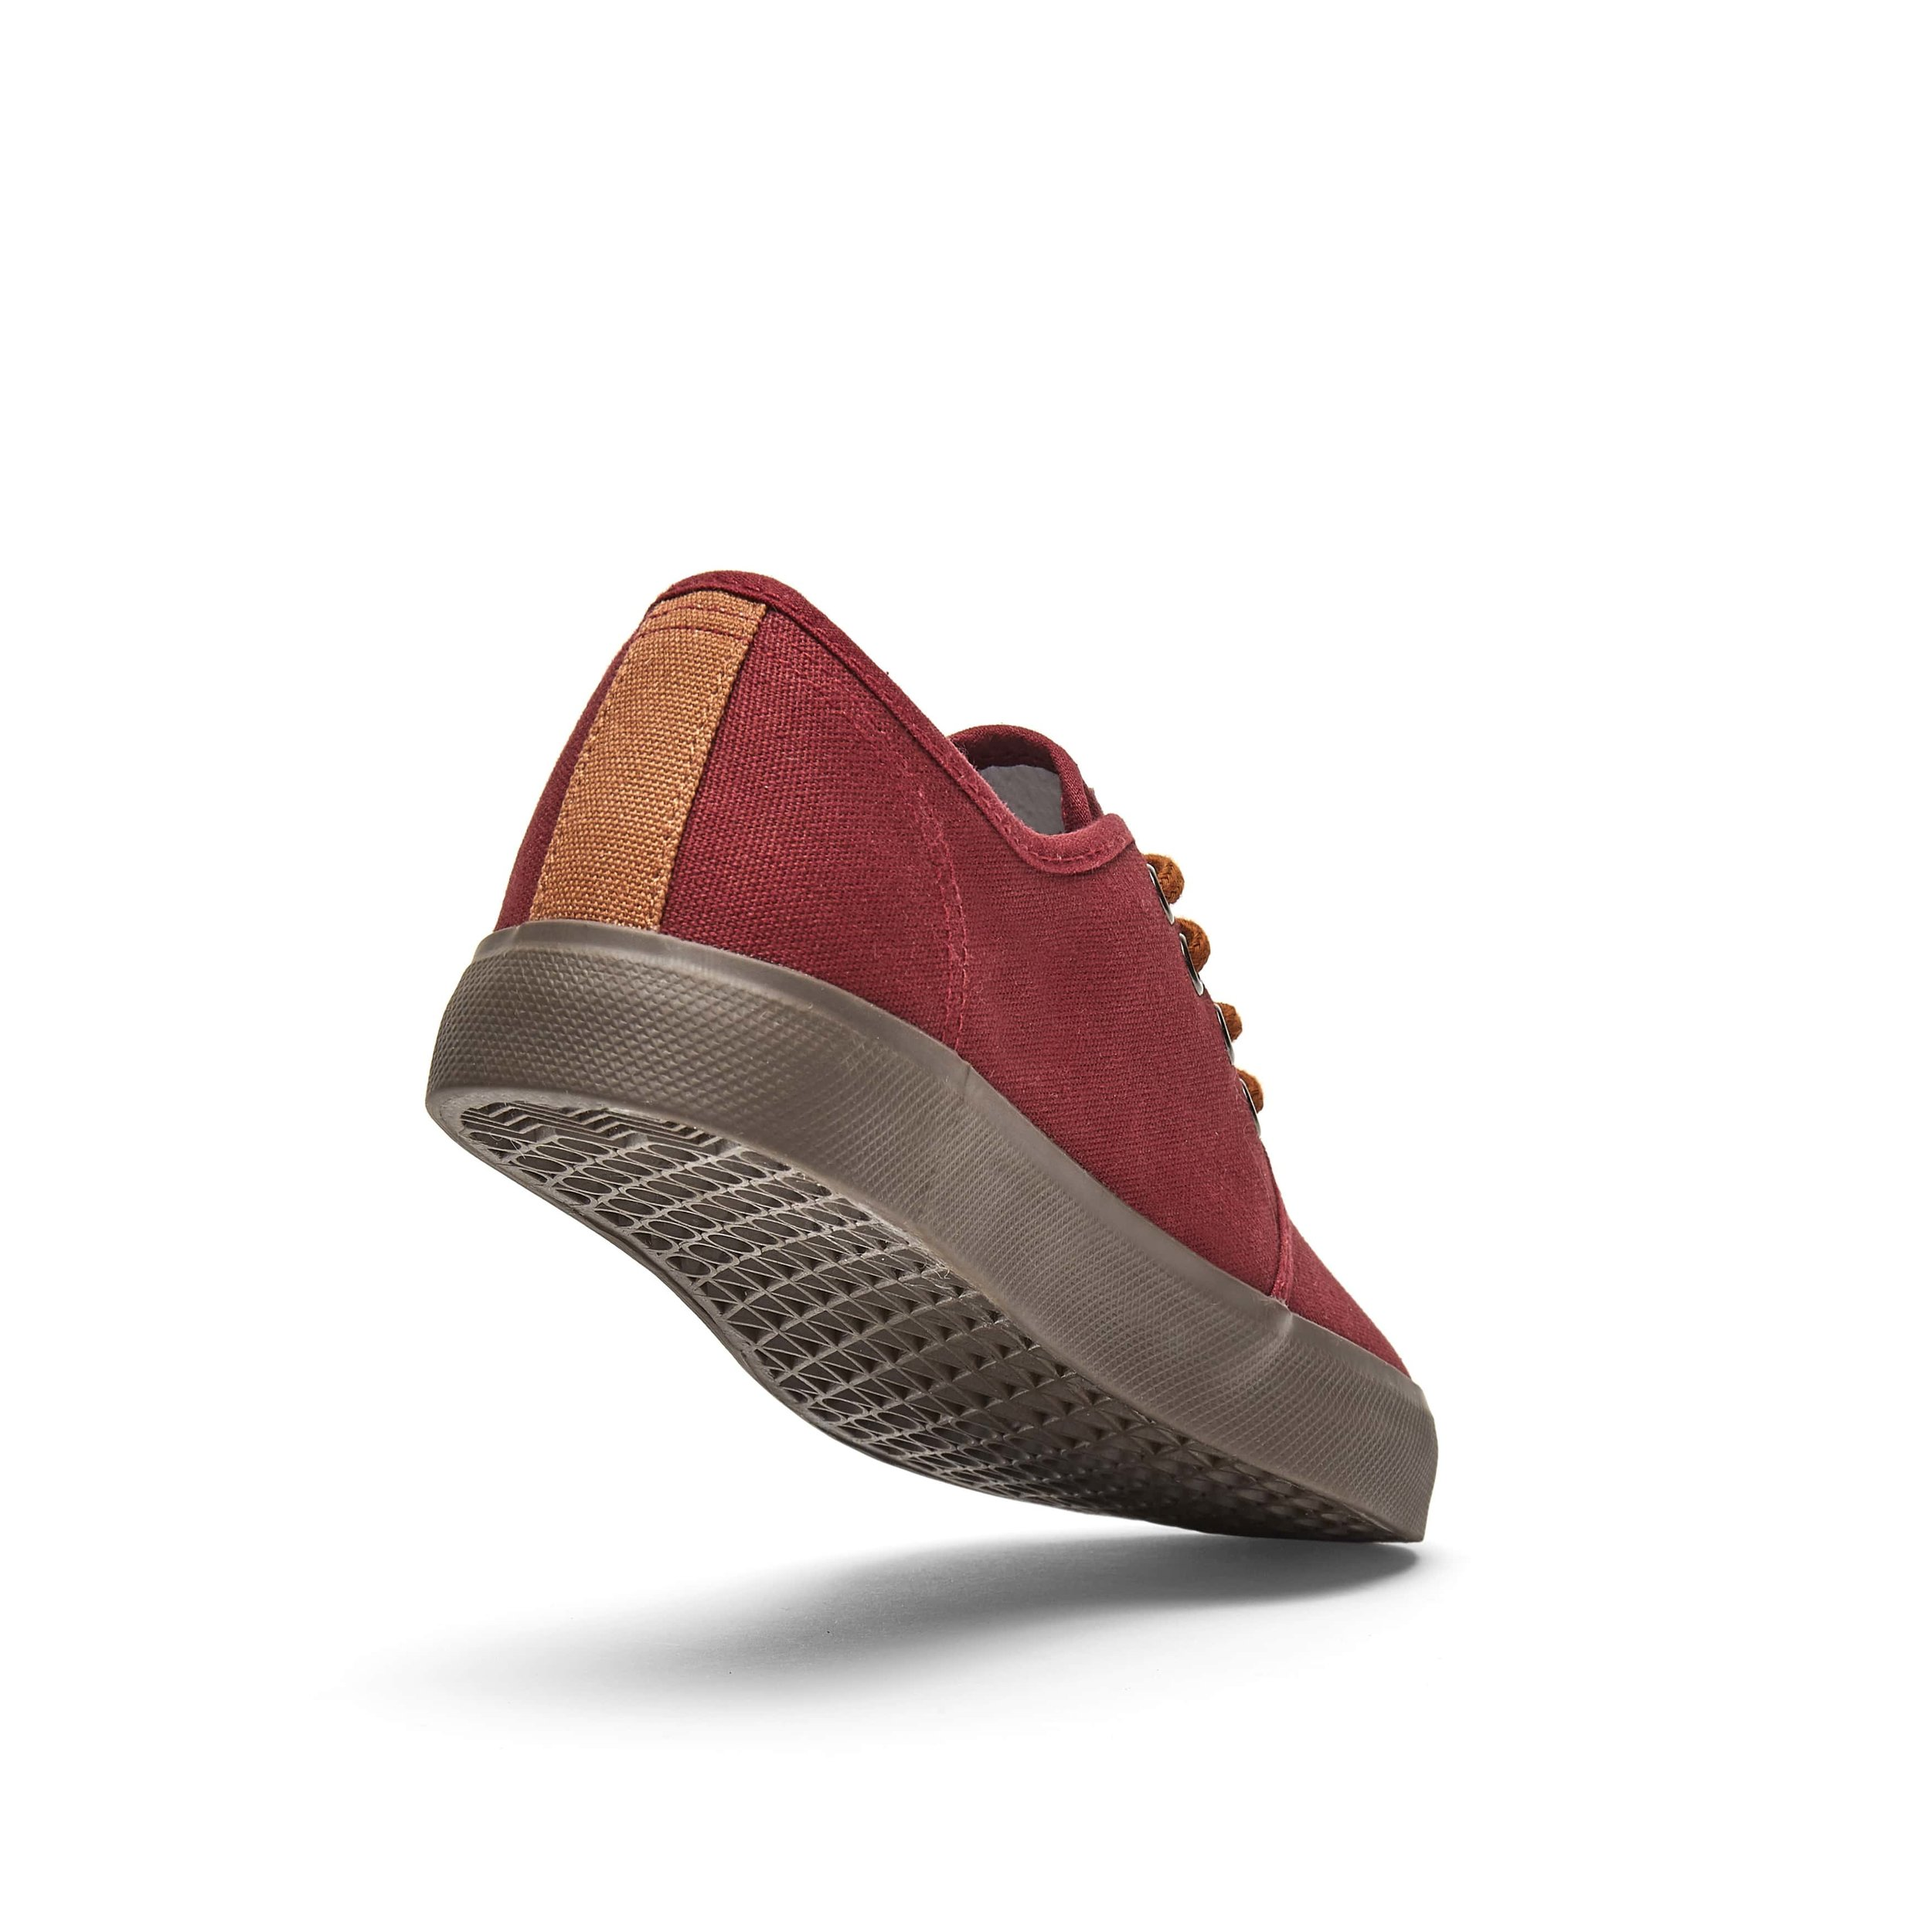 VAMVAS eco-friendly shoes